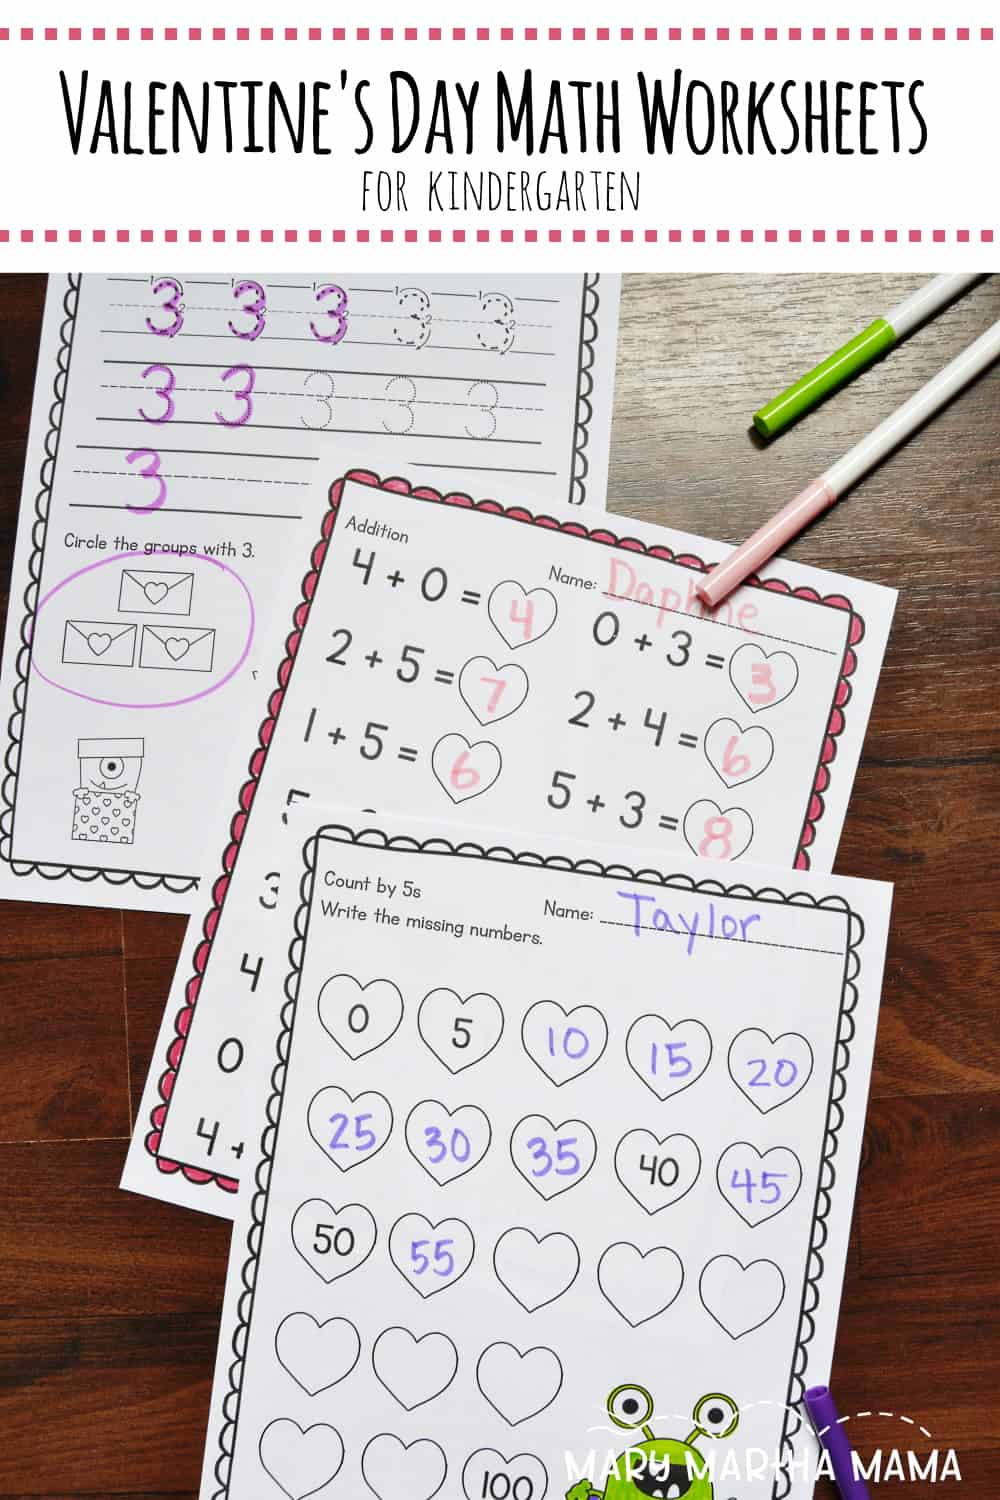 Use these 20 pages of Valentine's Day Math Worksheets for Kindergarten to help your students work on their math skills while having some fun.